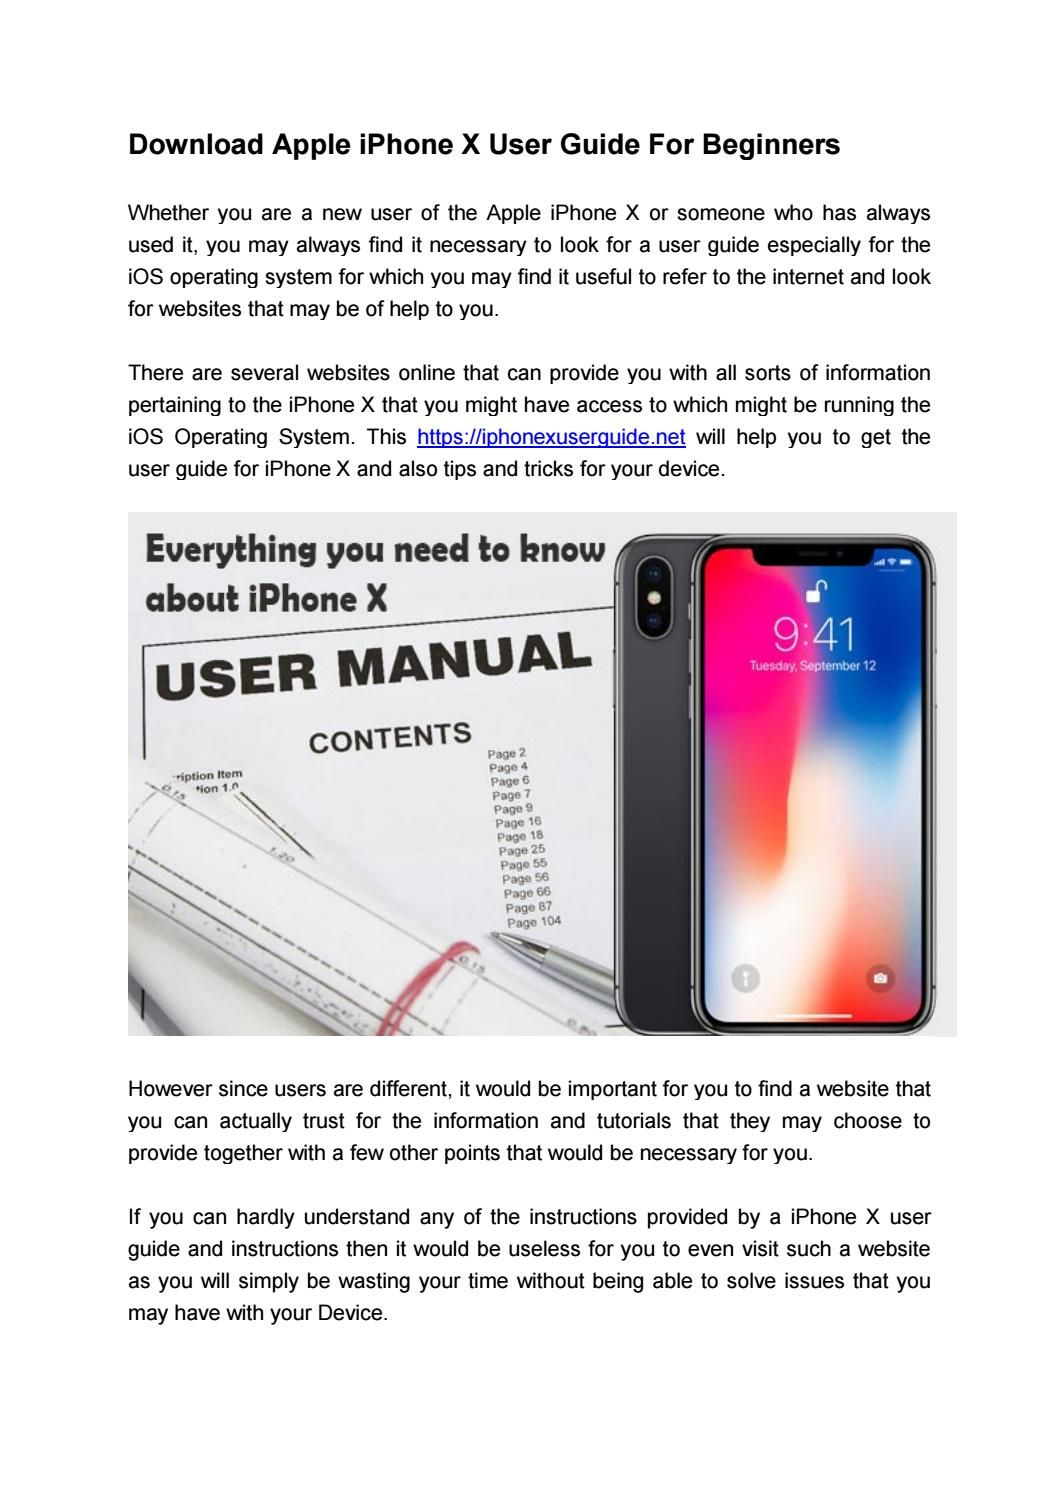 iPhone X User Guide for Beginners by Michael J  Alphin - issuu